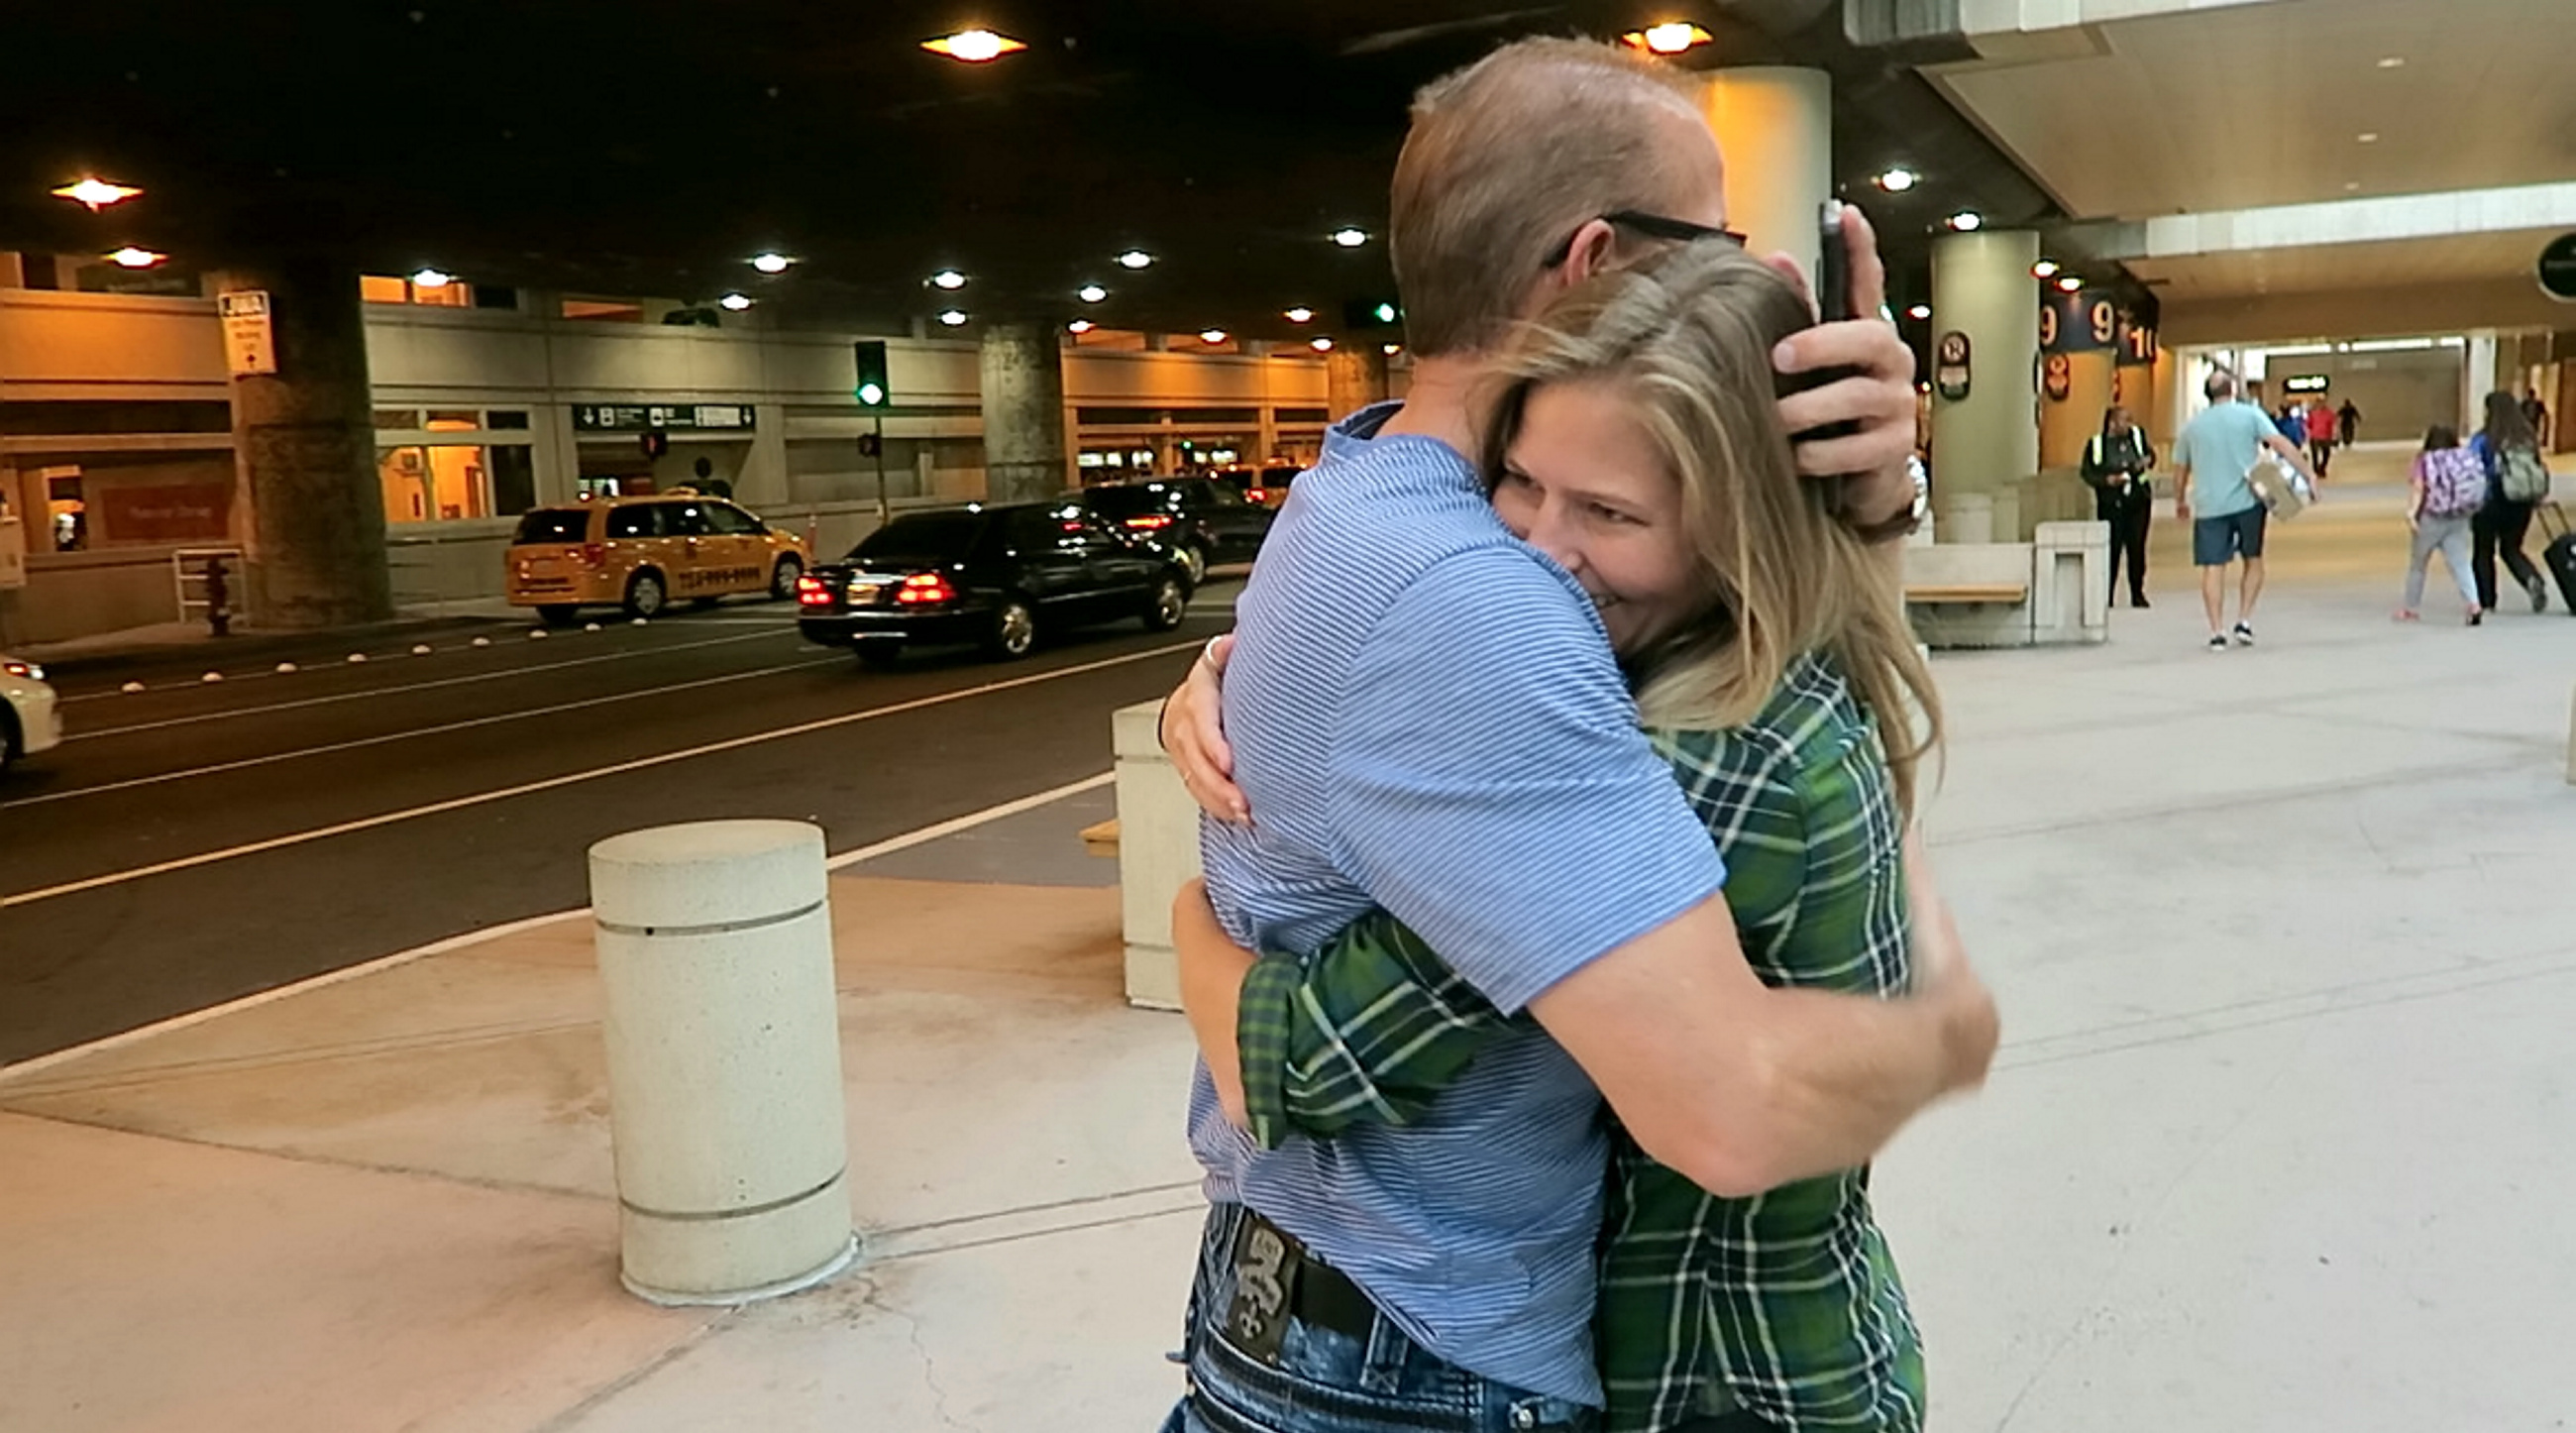 Michelle hugs biological dad for first time at Orange County airport